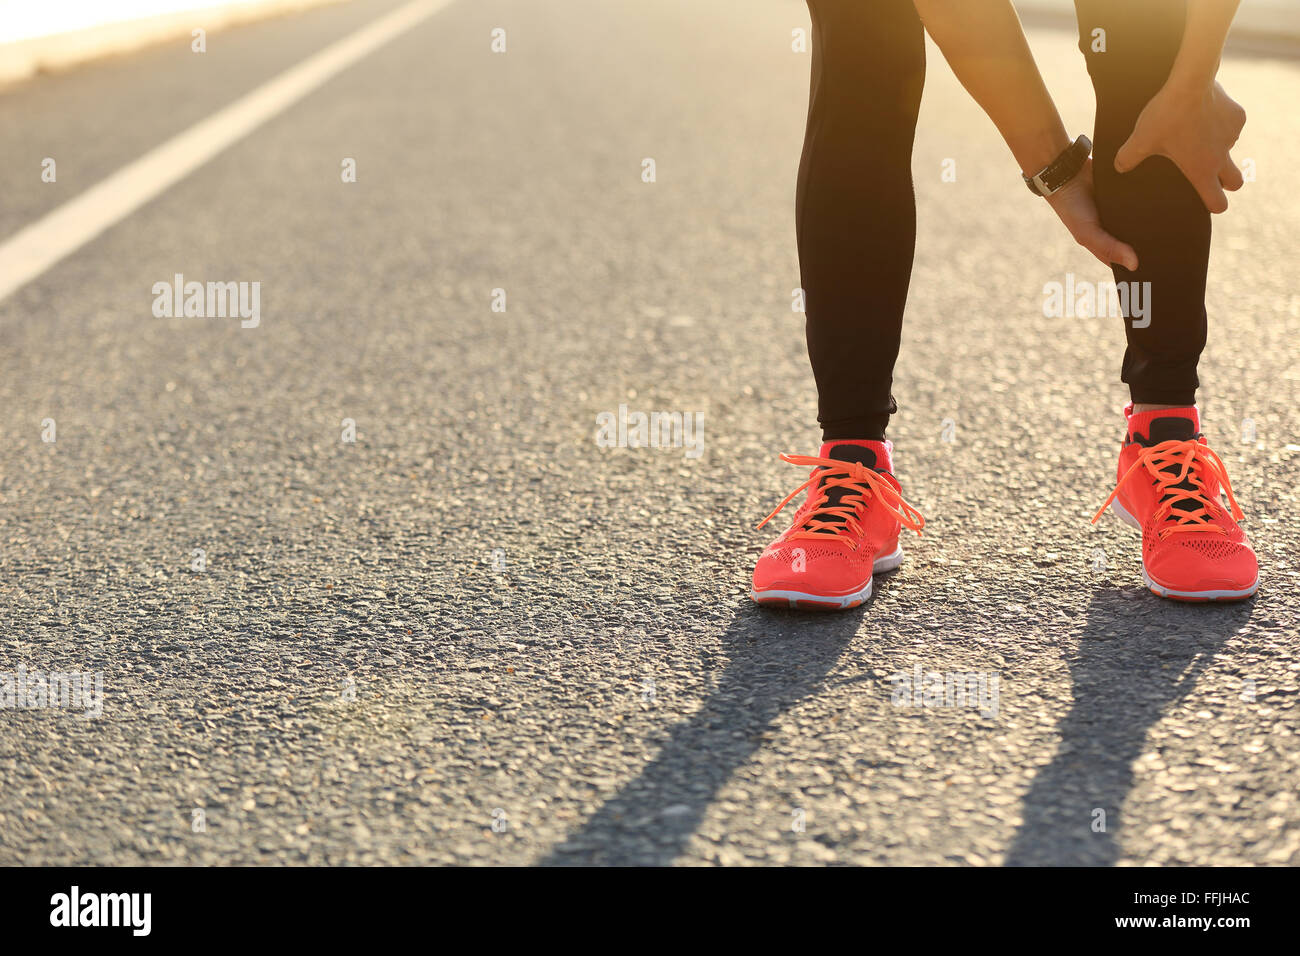 woman runner hold her injured leg on road - Stock Image